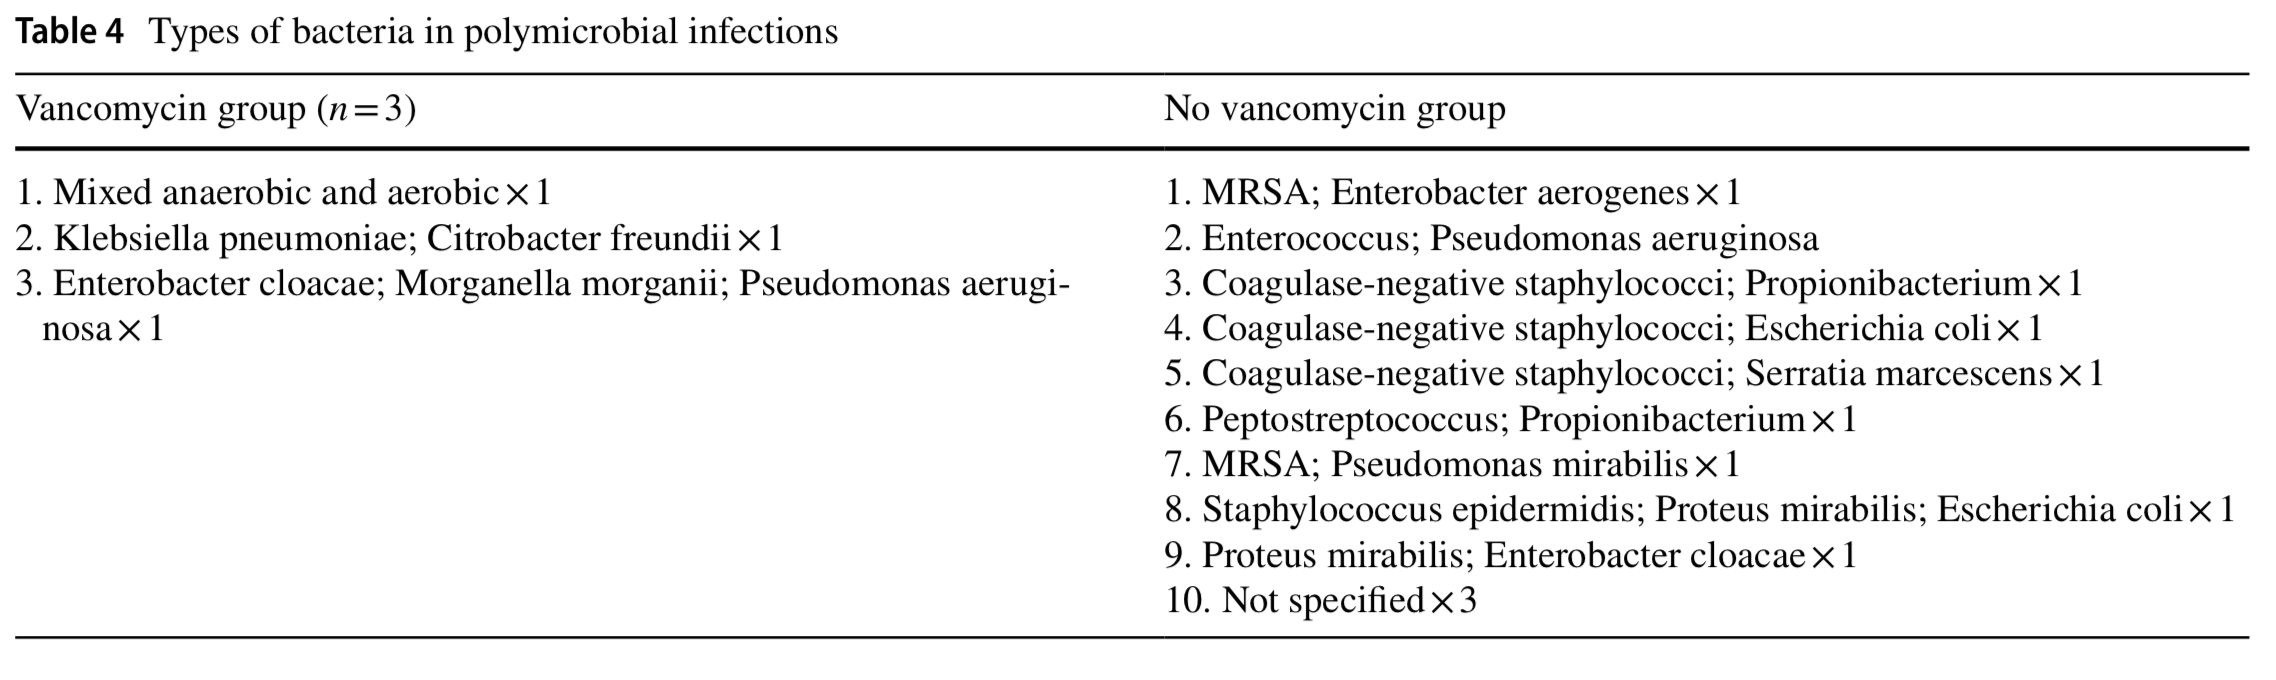 Meta-analysis of topical vancomycin powder for microbial profile in spinal surgical site infections